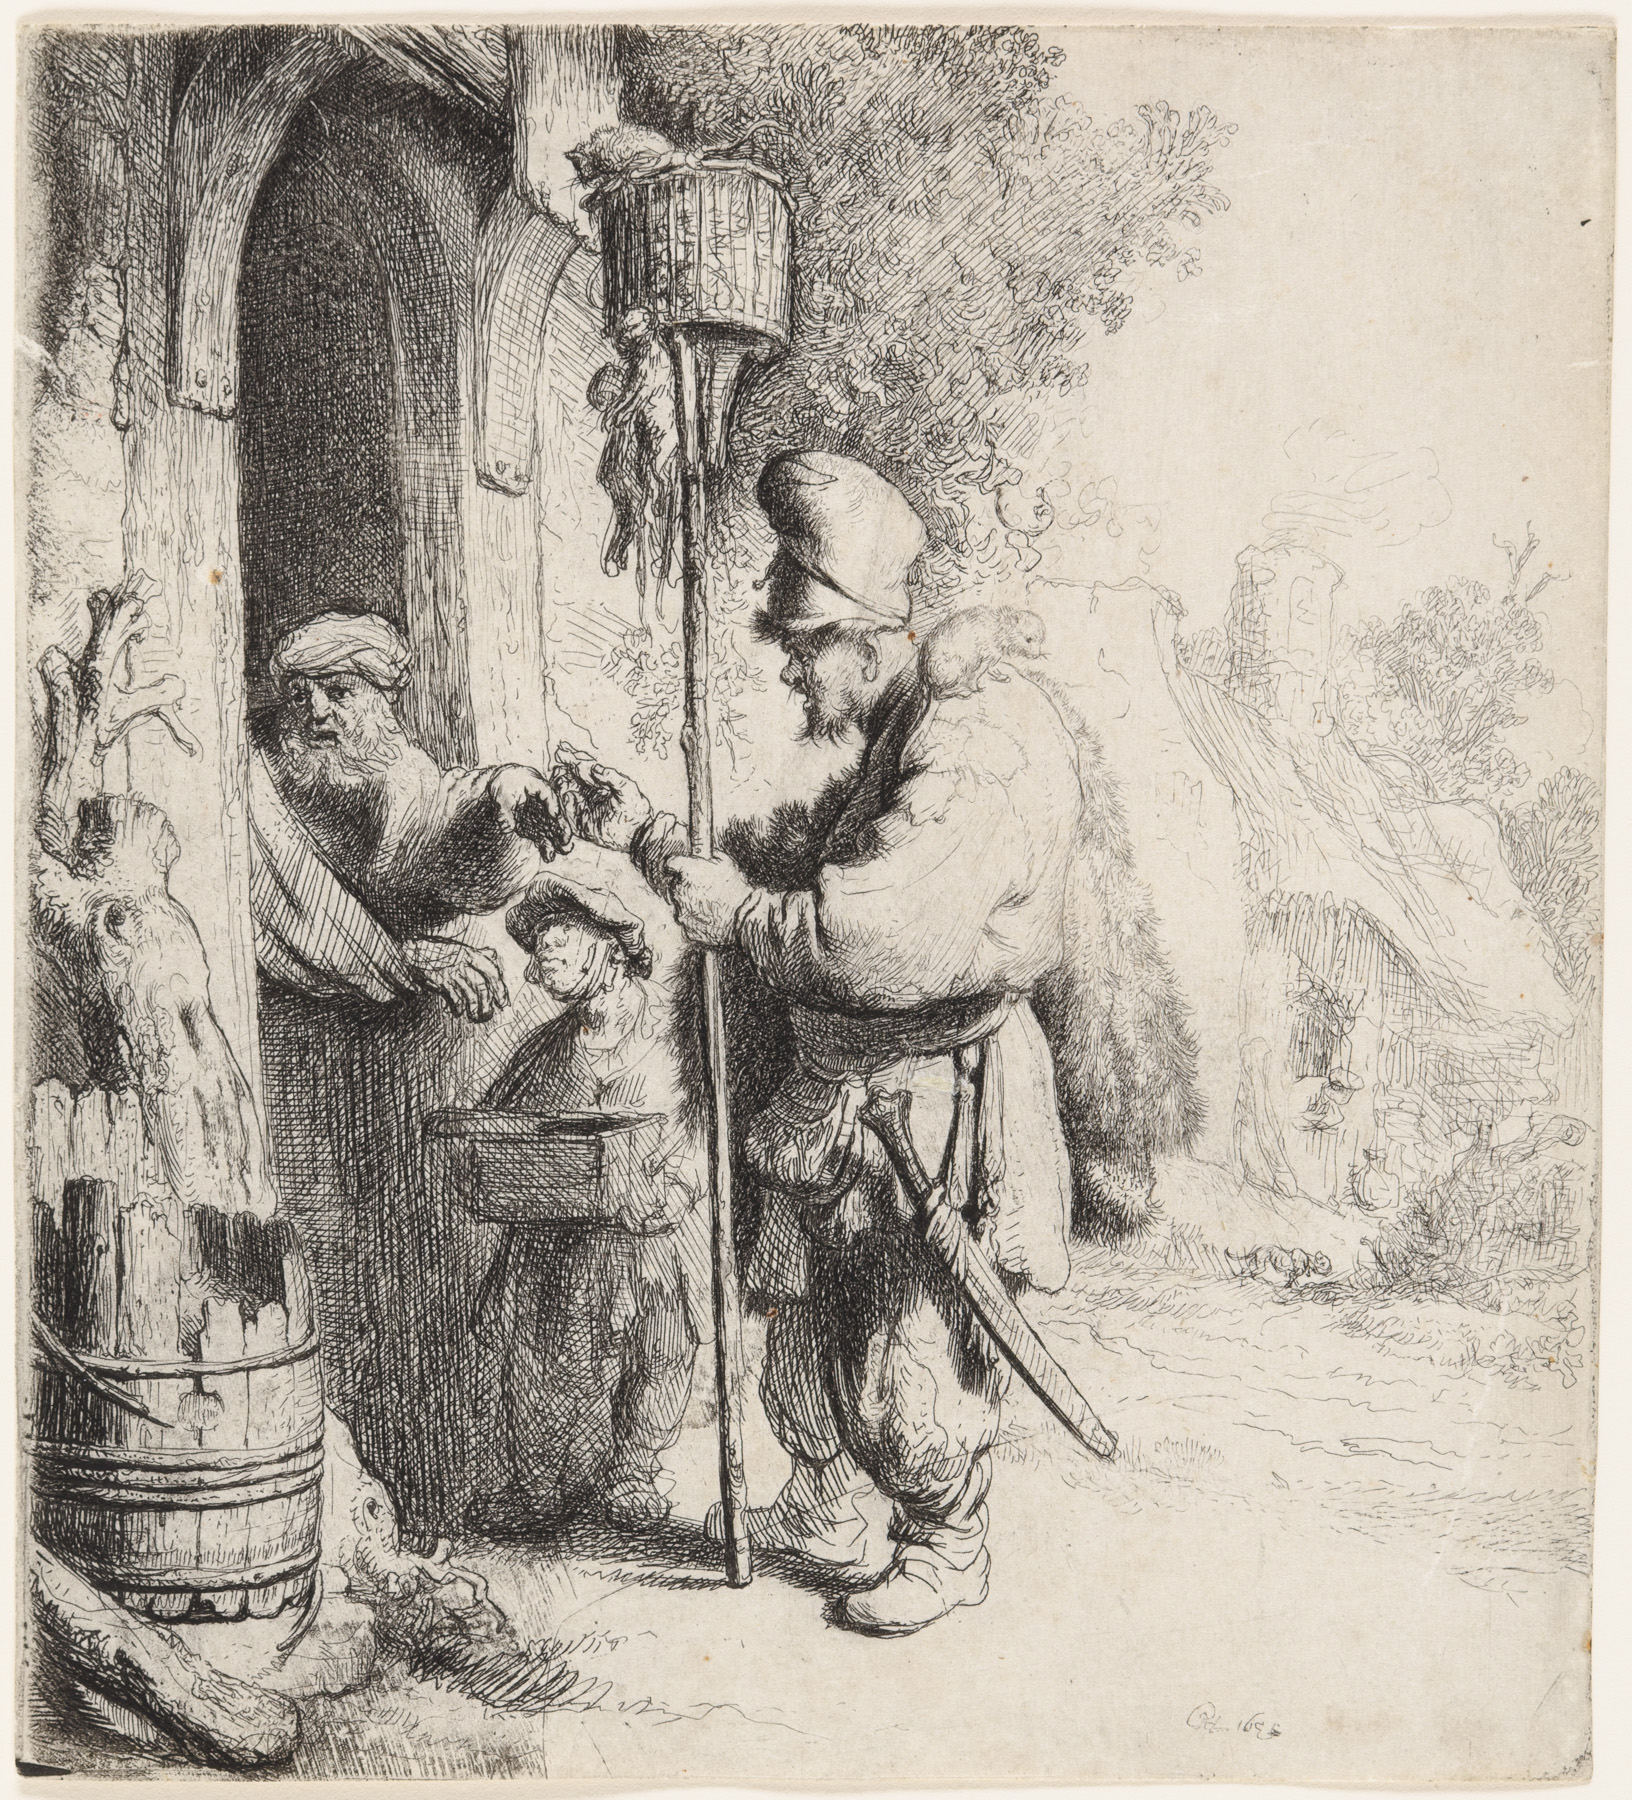 The Rat Catcher (The rat-poison peddler) by Harmensz van Rijn Rembrandt